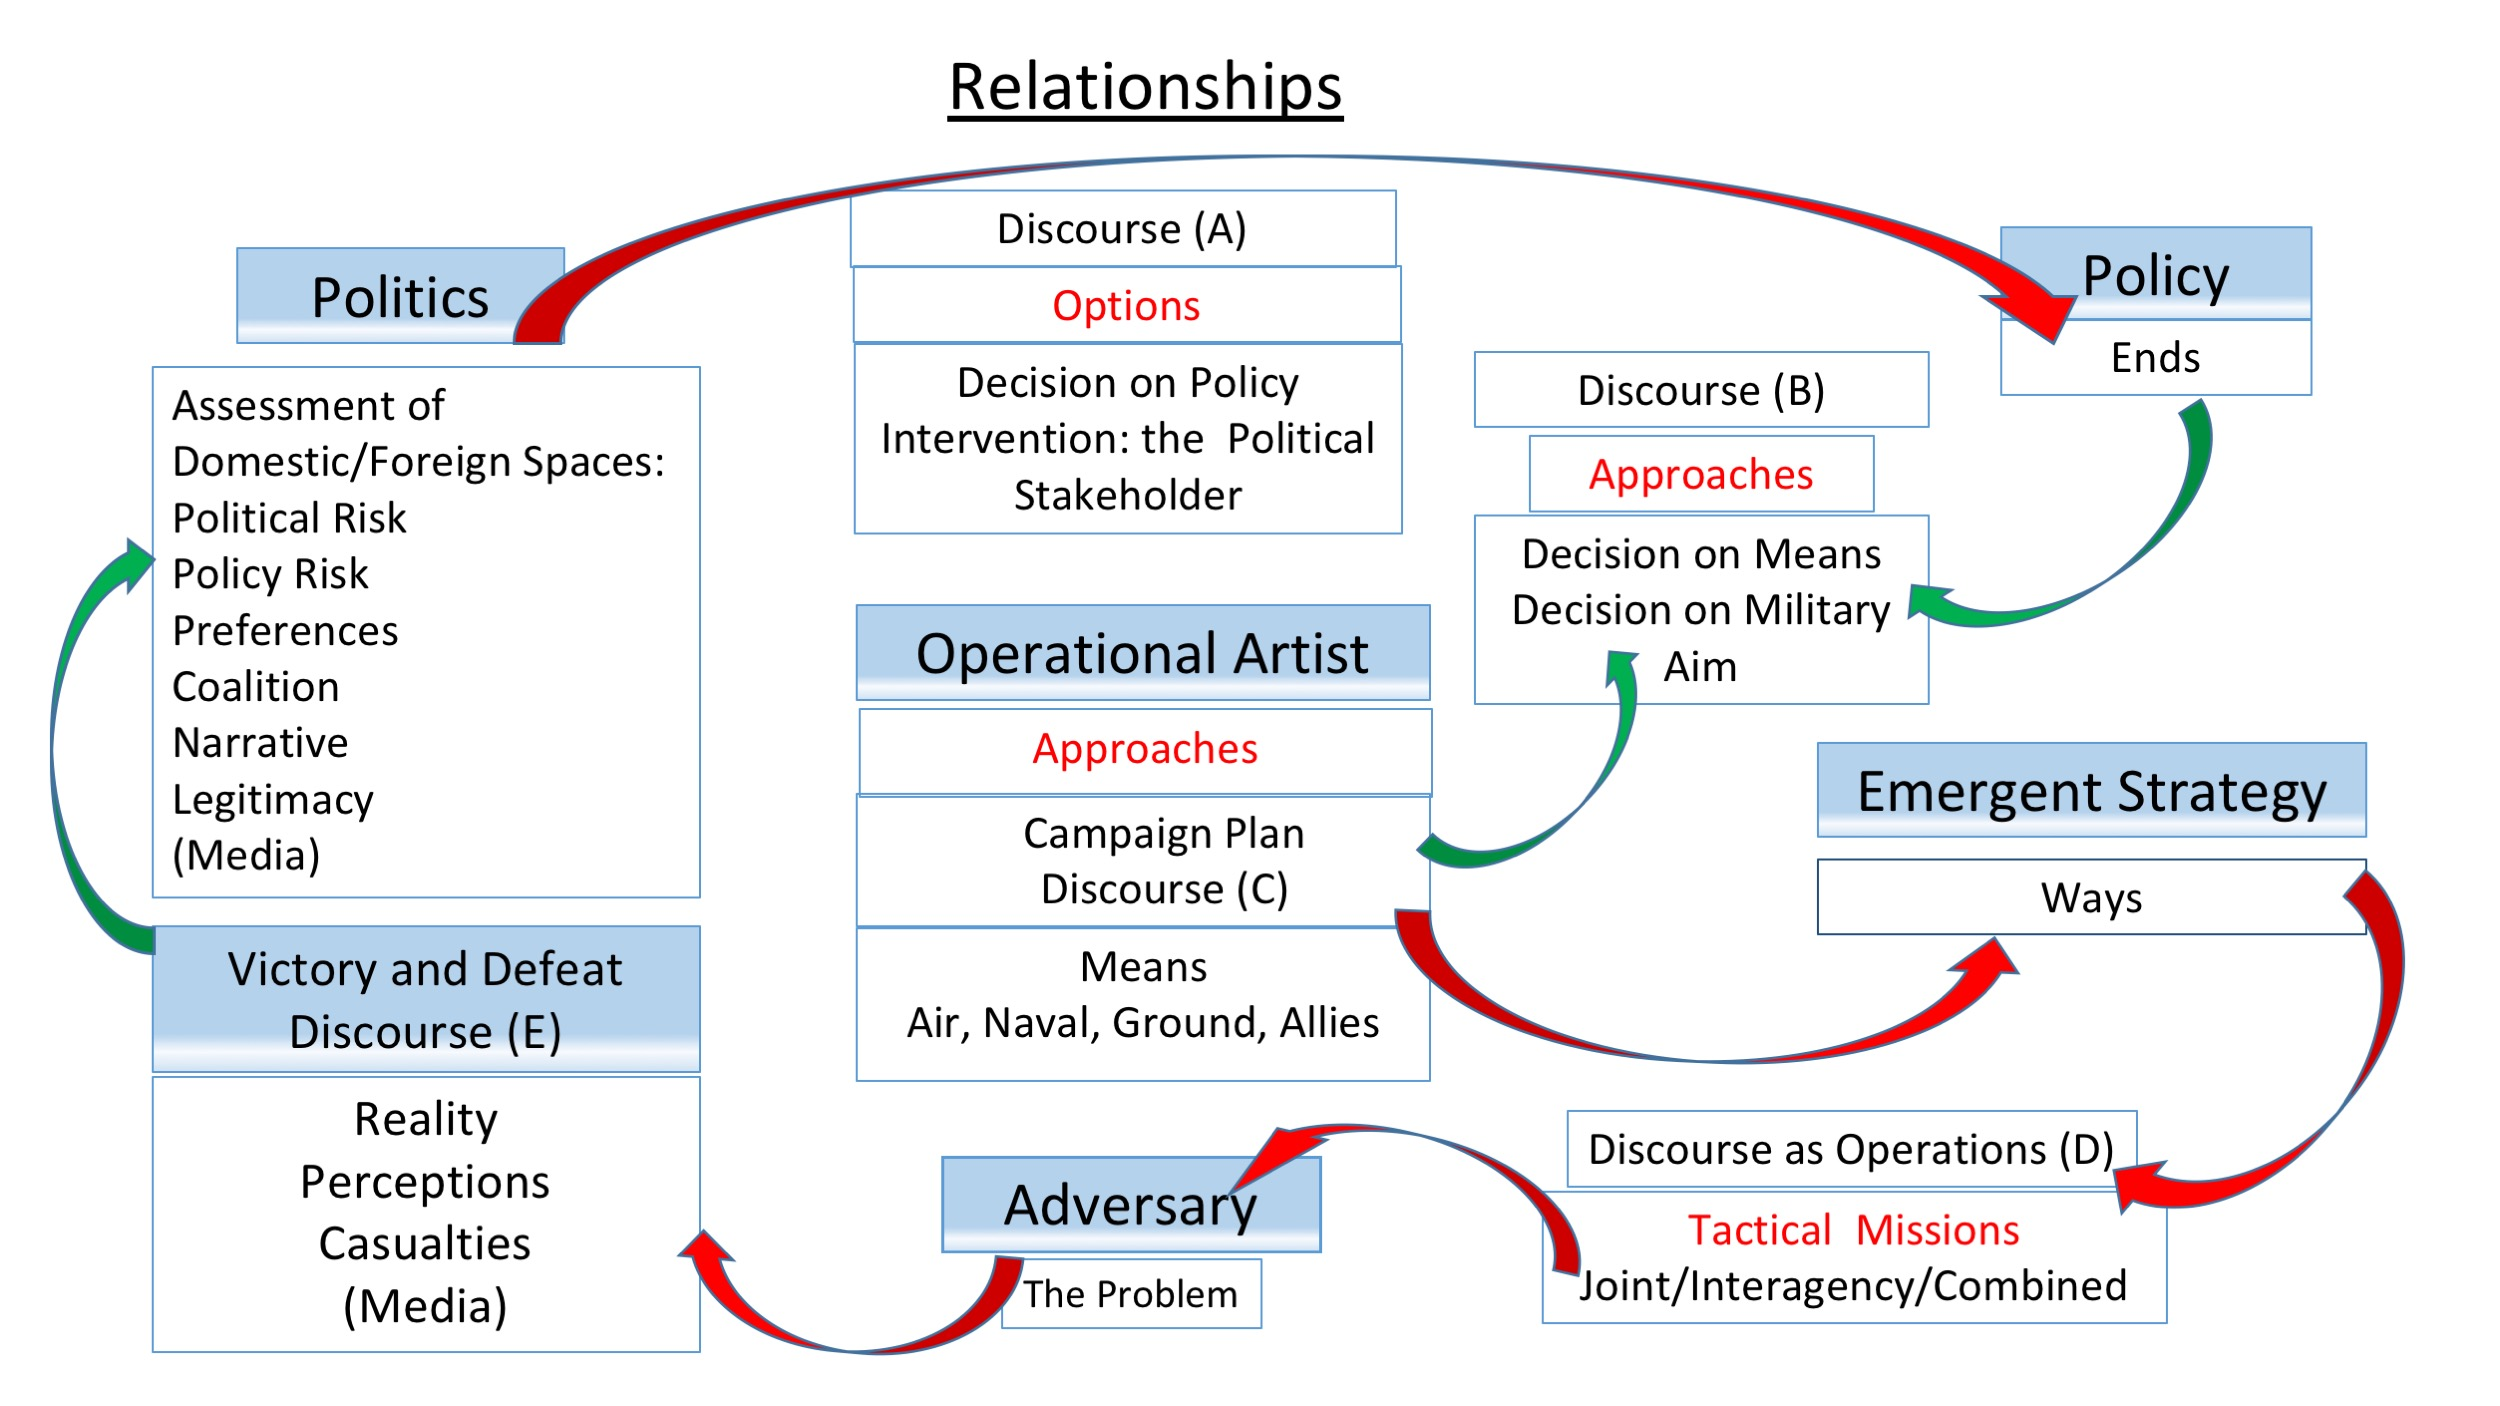 The Process and Resolution of Politically-Aware Military Advice[13]